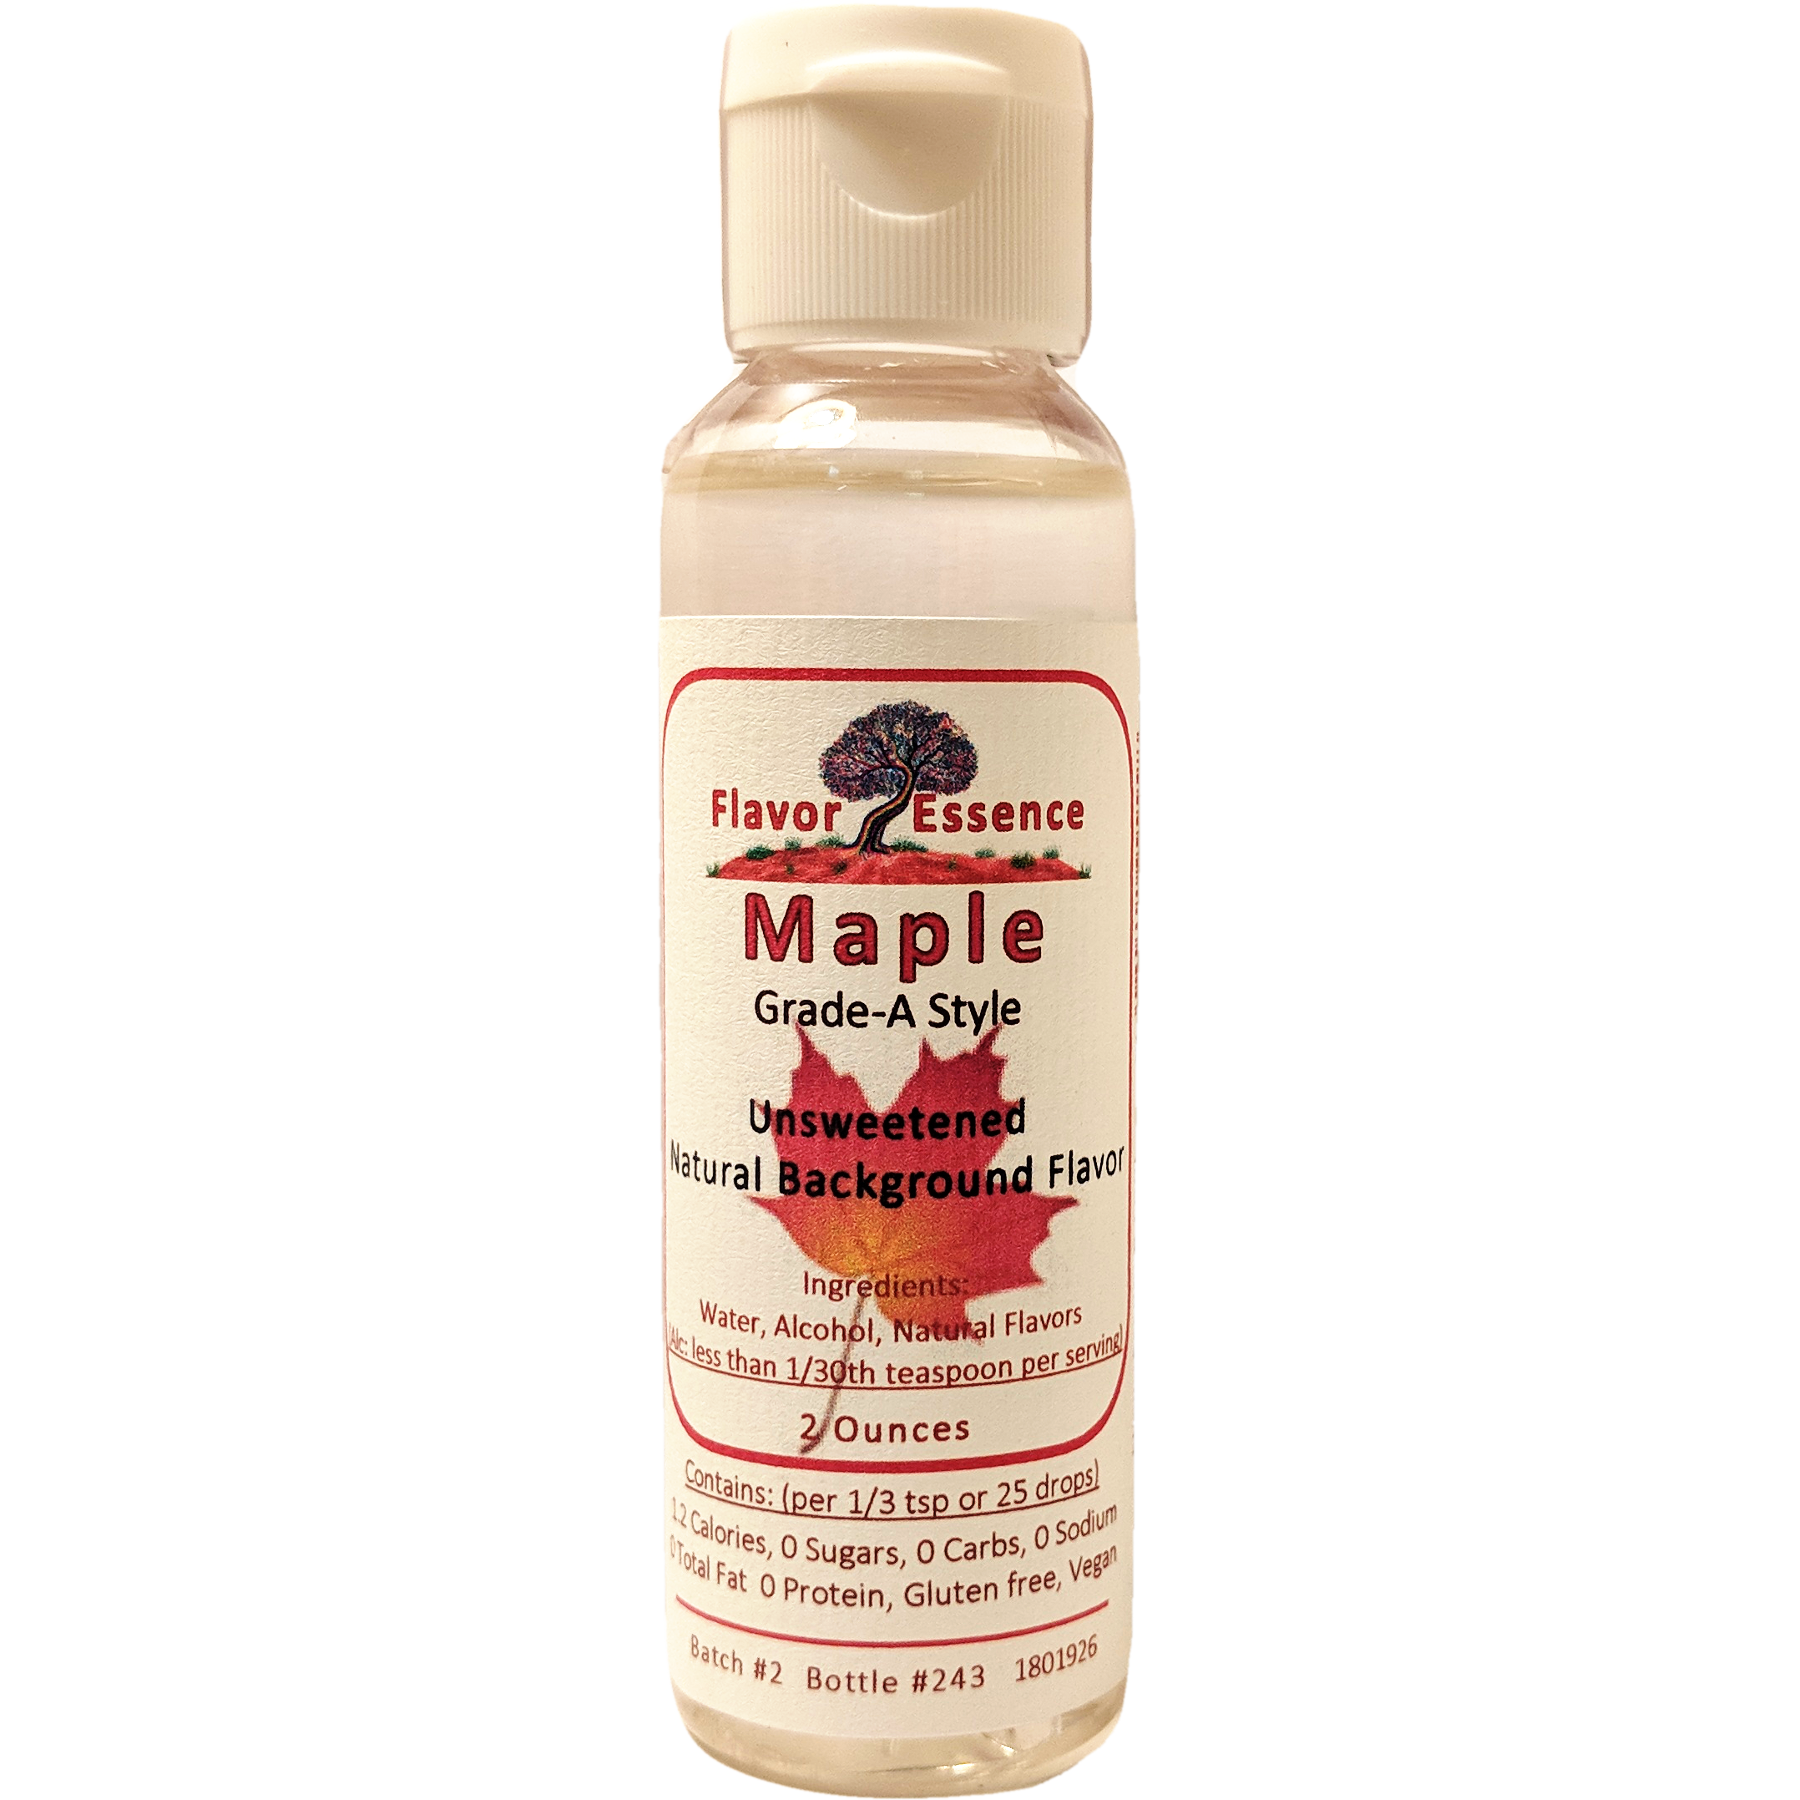 Flavor Essence MAPLE (Grade-A Style) -Unsweetened Natural Flavoring MAP-